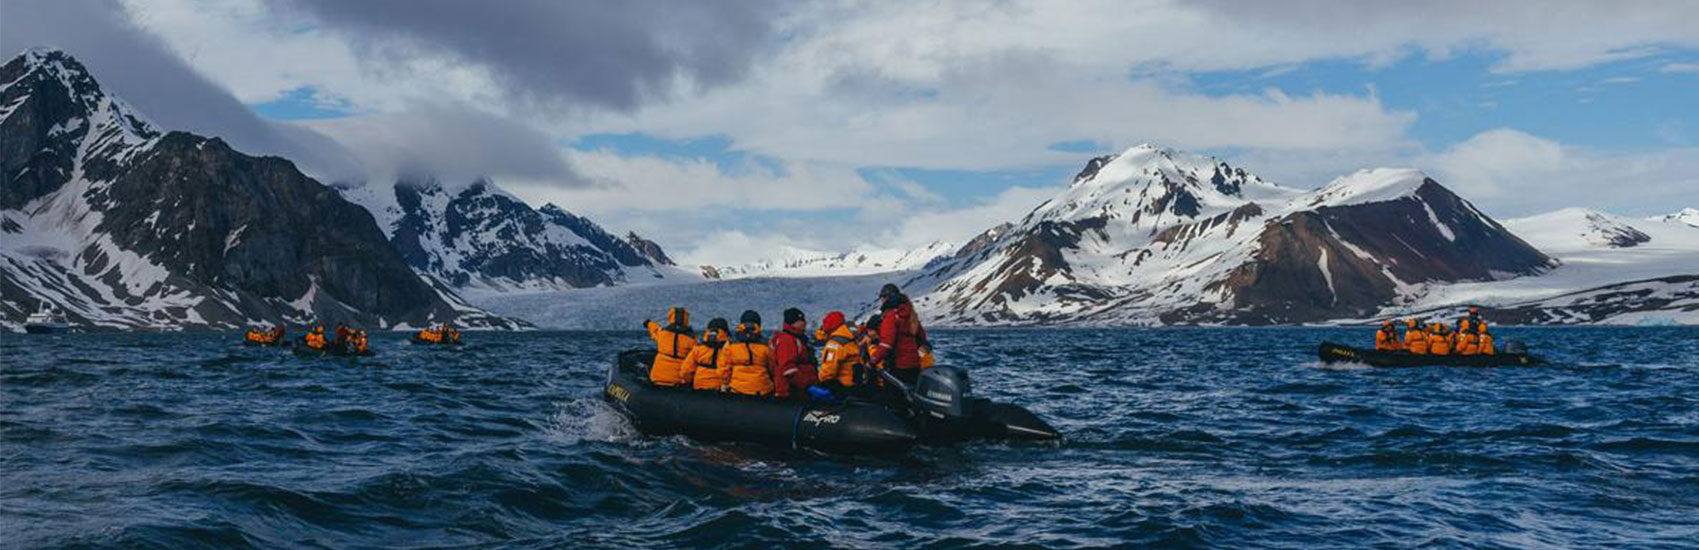 Save on Spitsbergen Voyages with Quark Expeditions 1